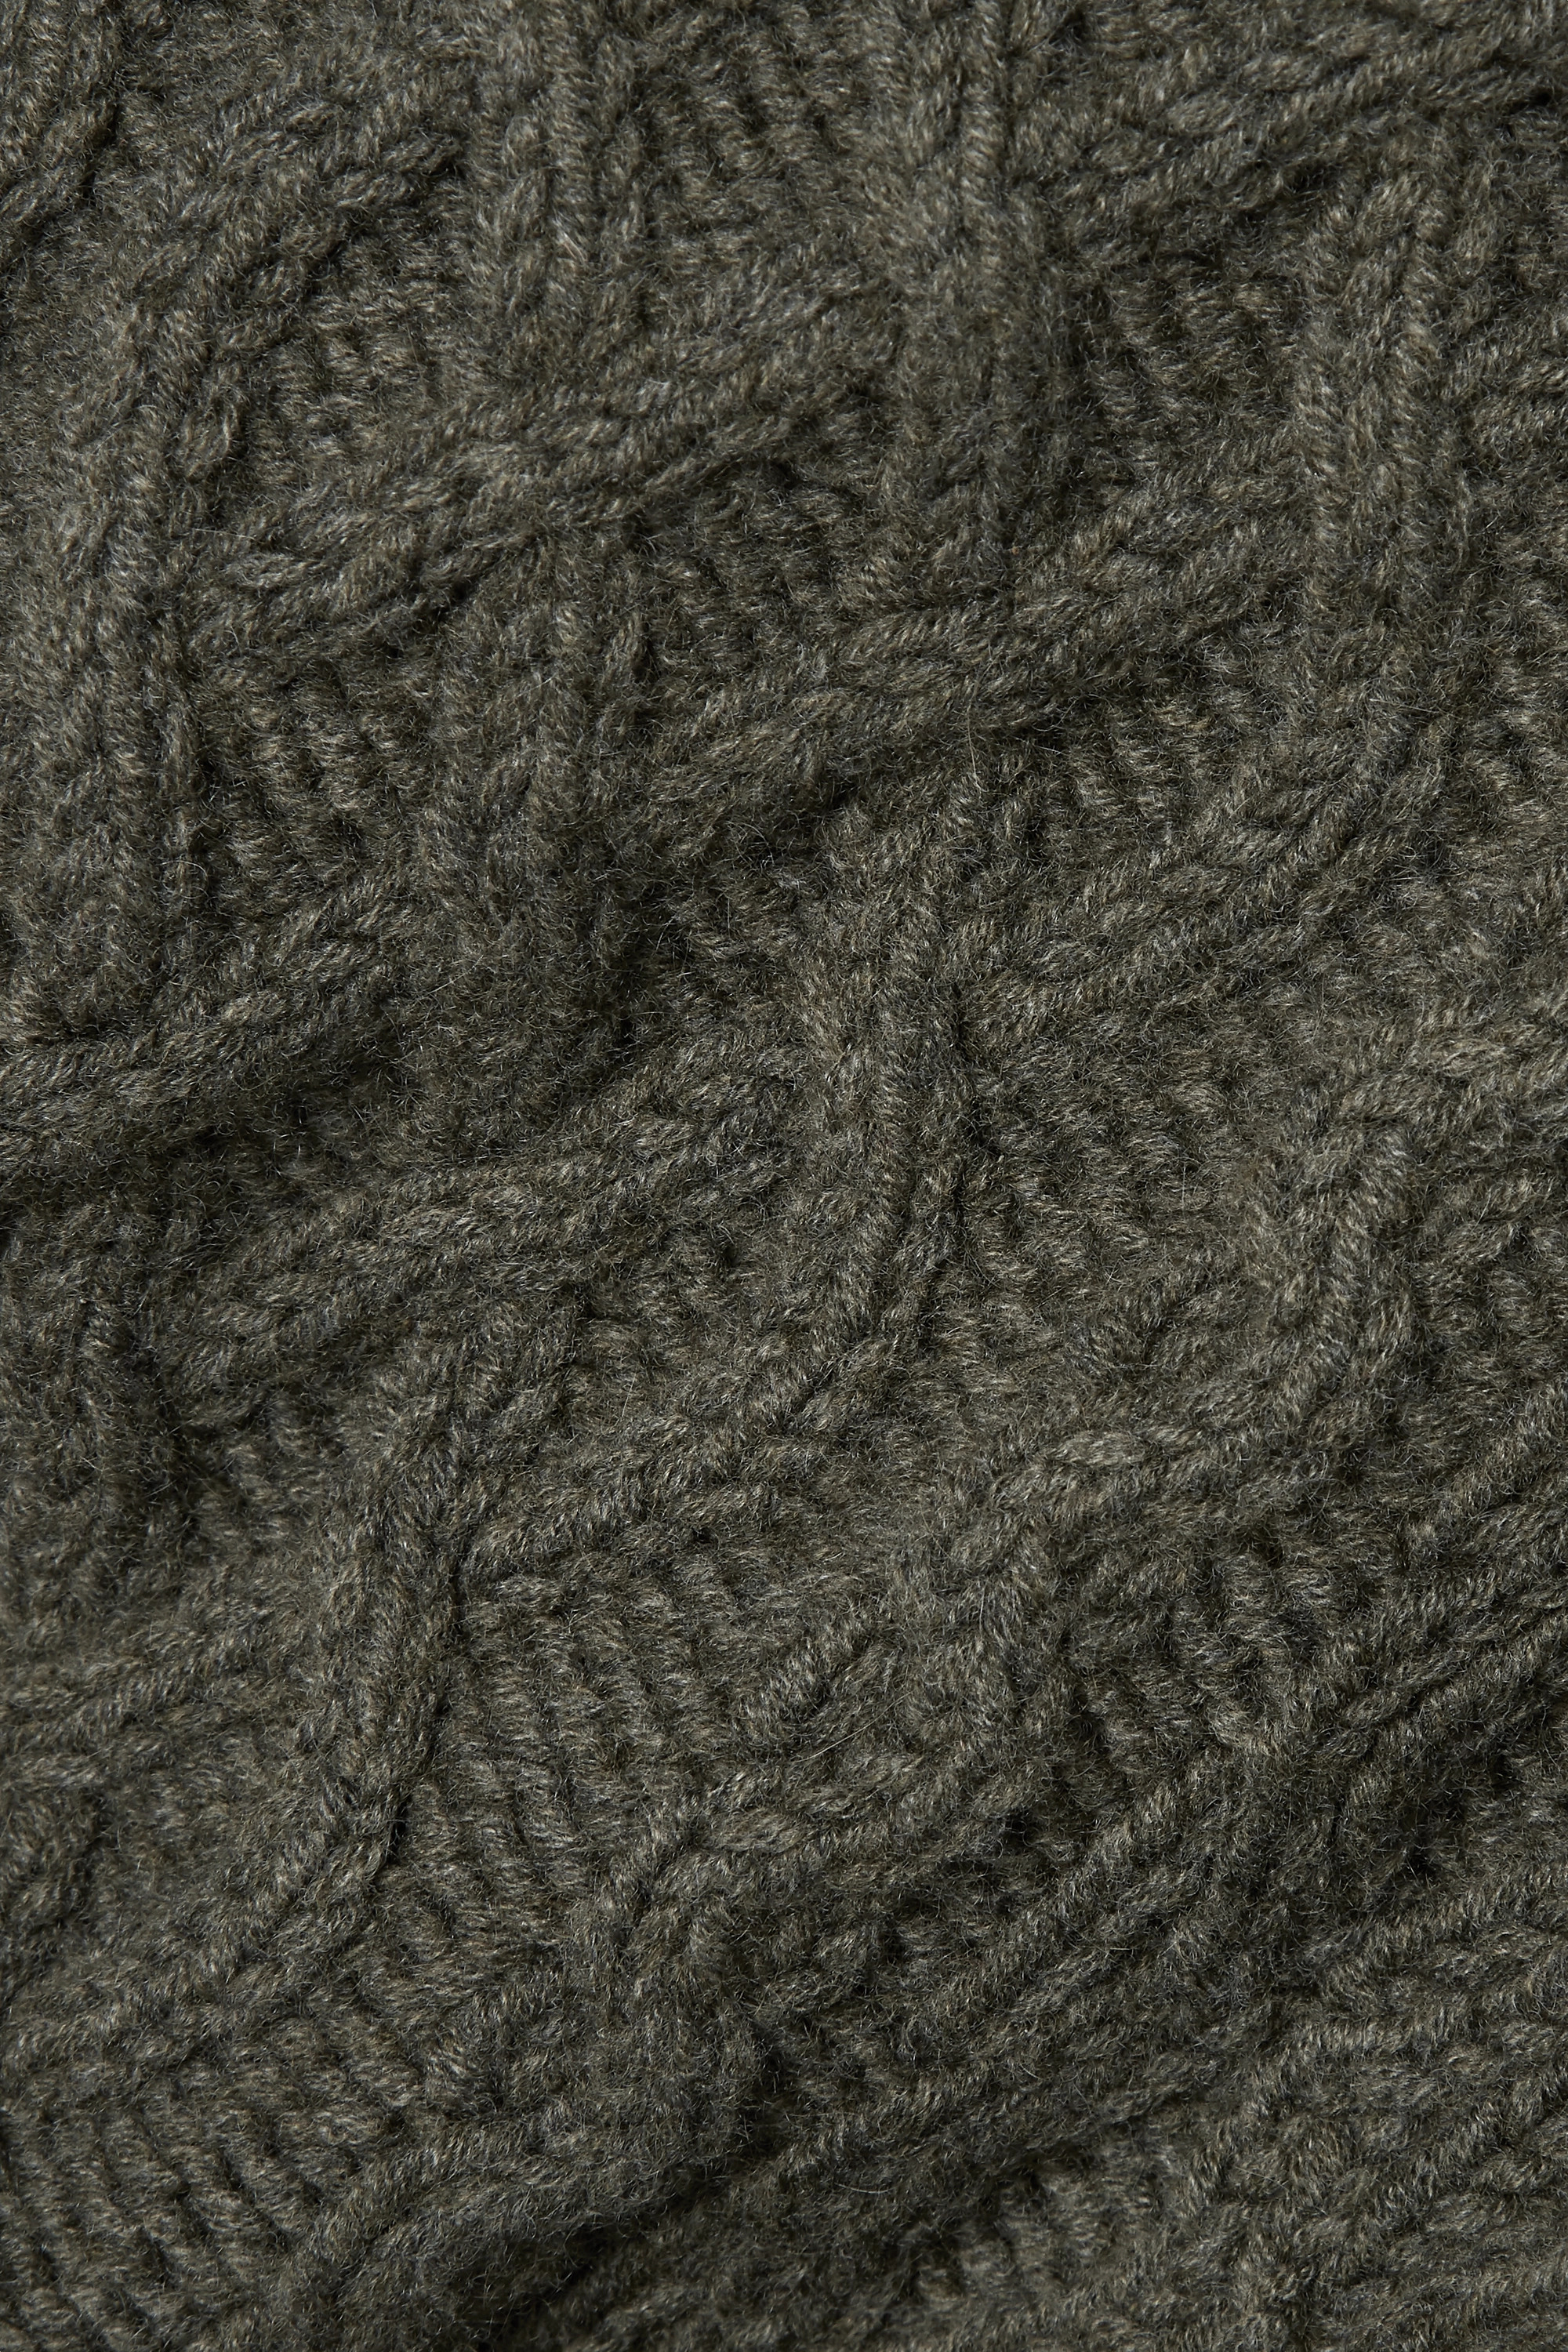 Michael Kors Collection Corallina cable-knit cashmere sweater